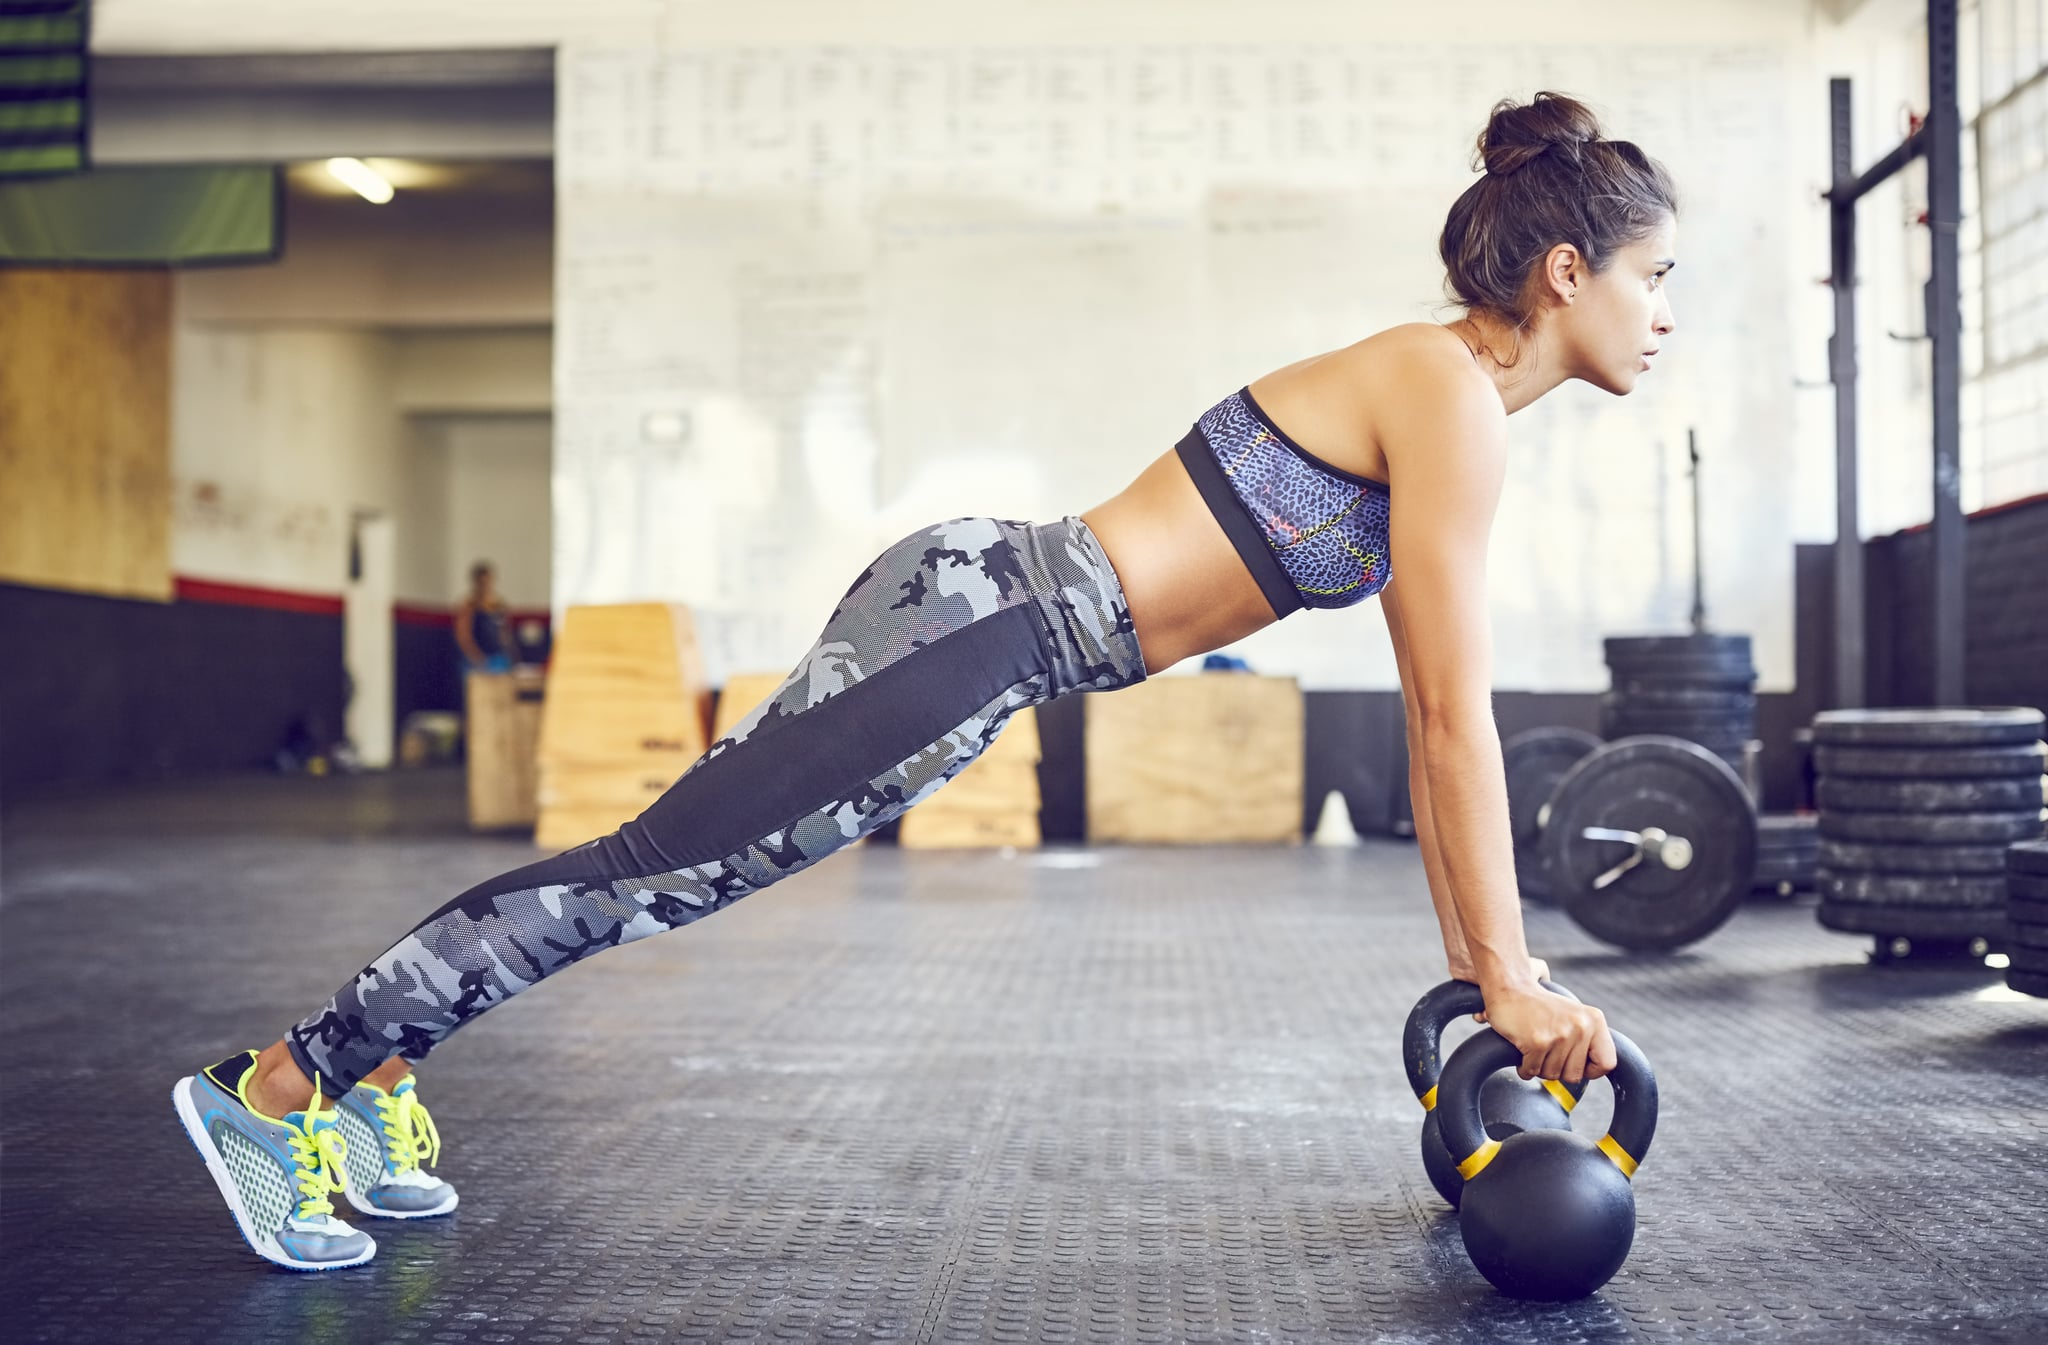 Determined fit athlete doing push-ups on kettlebells. Side view of woman exercising in gym. Sporty female in health club.